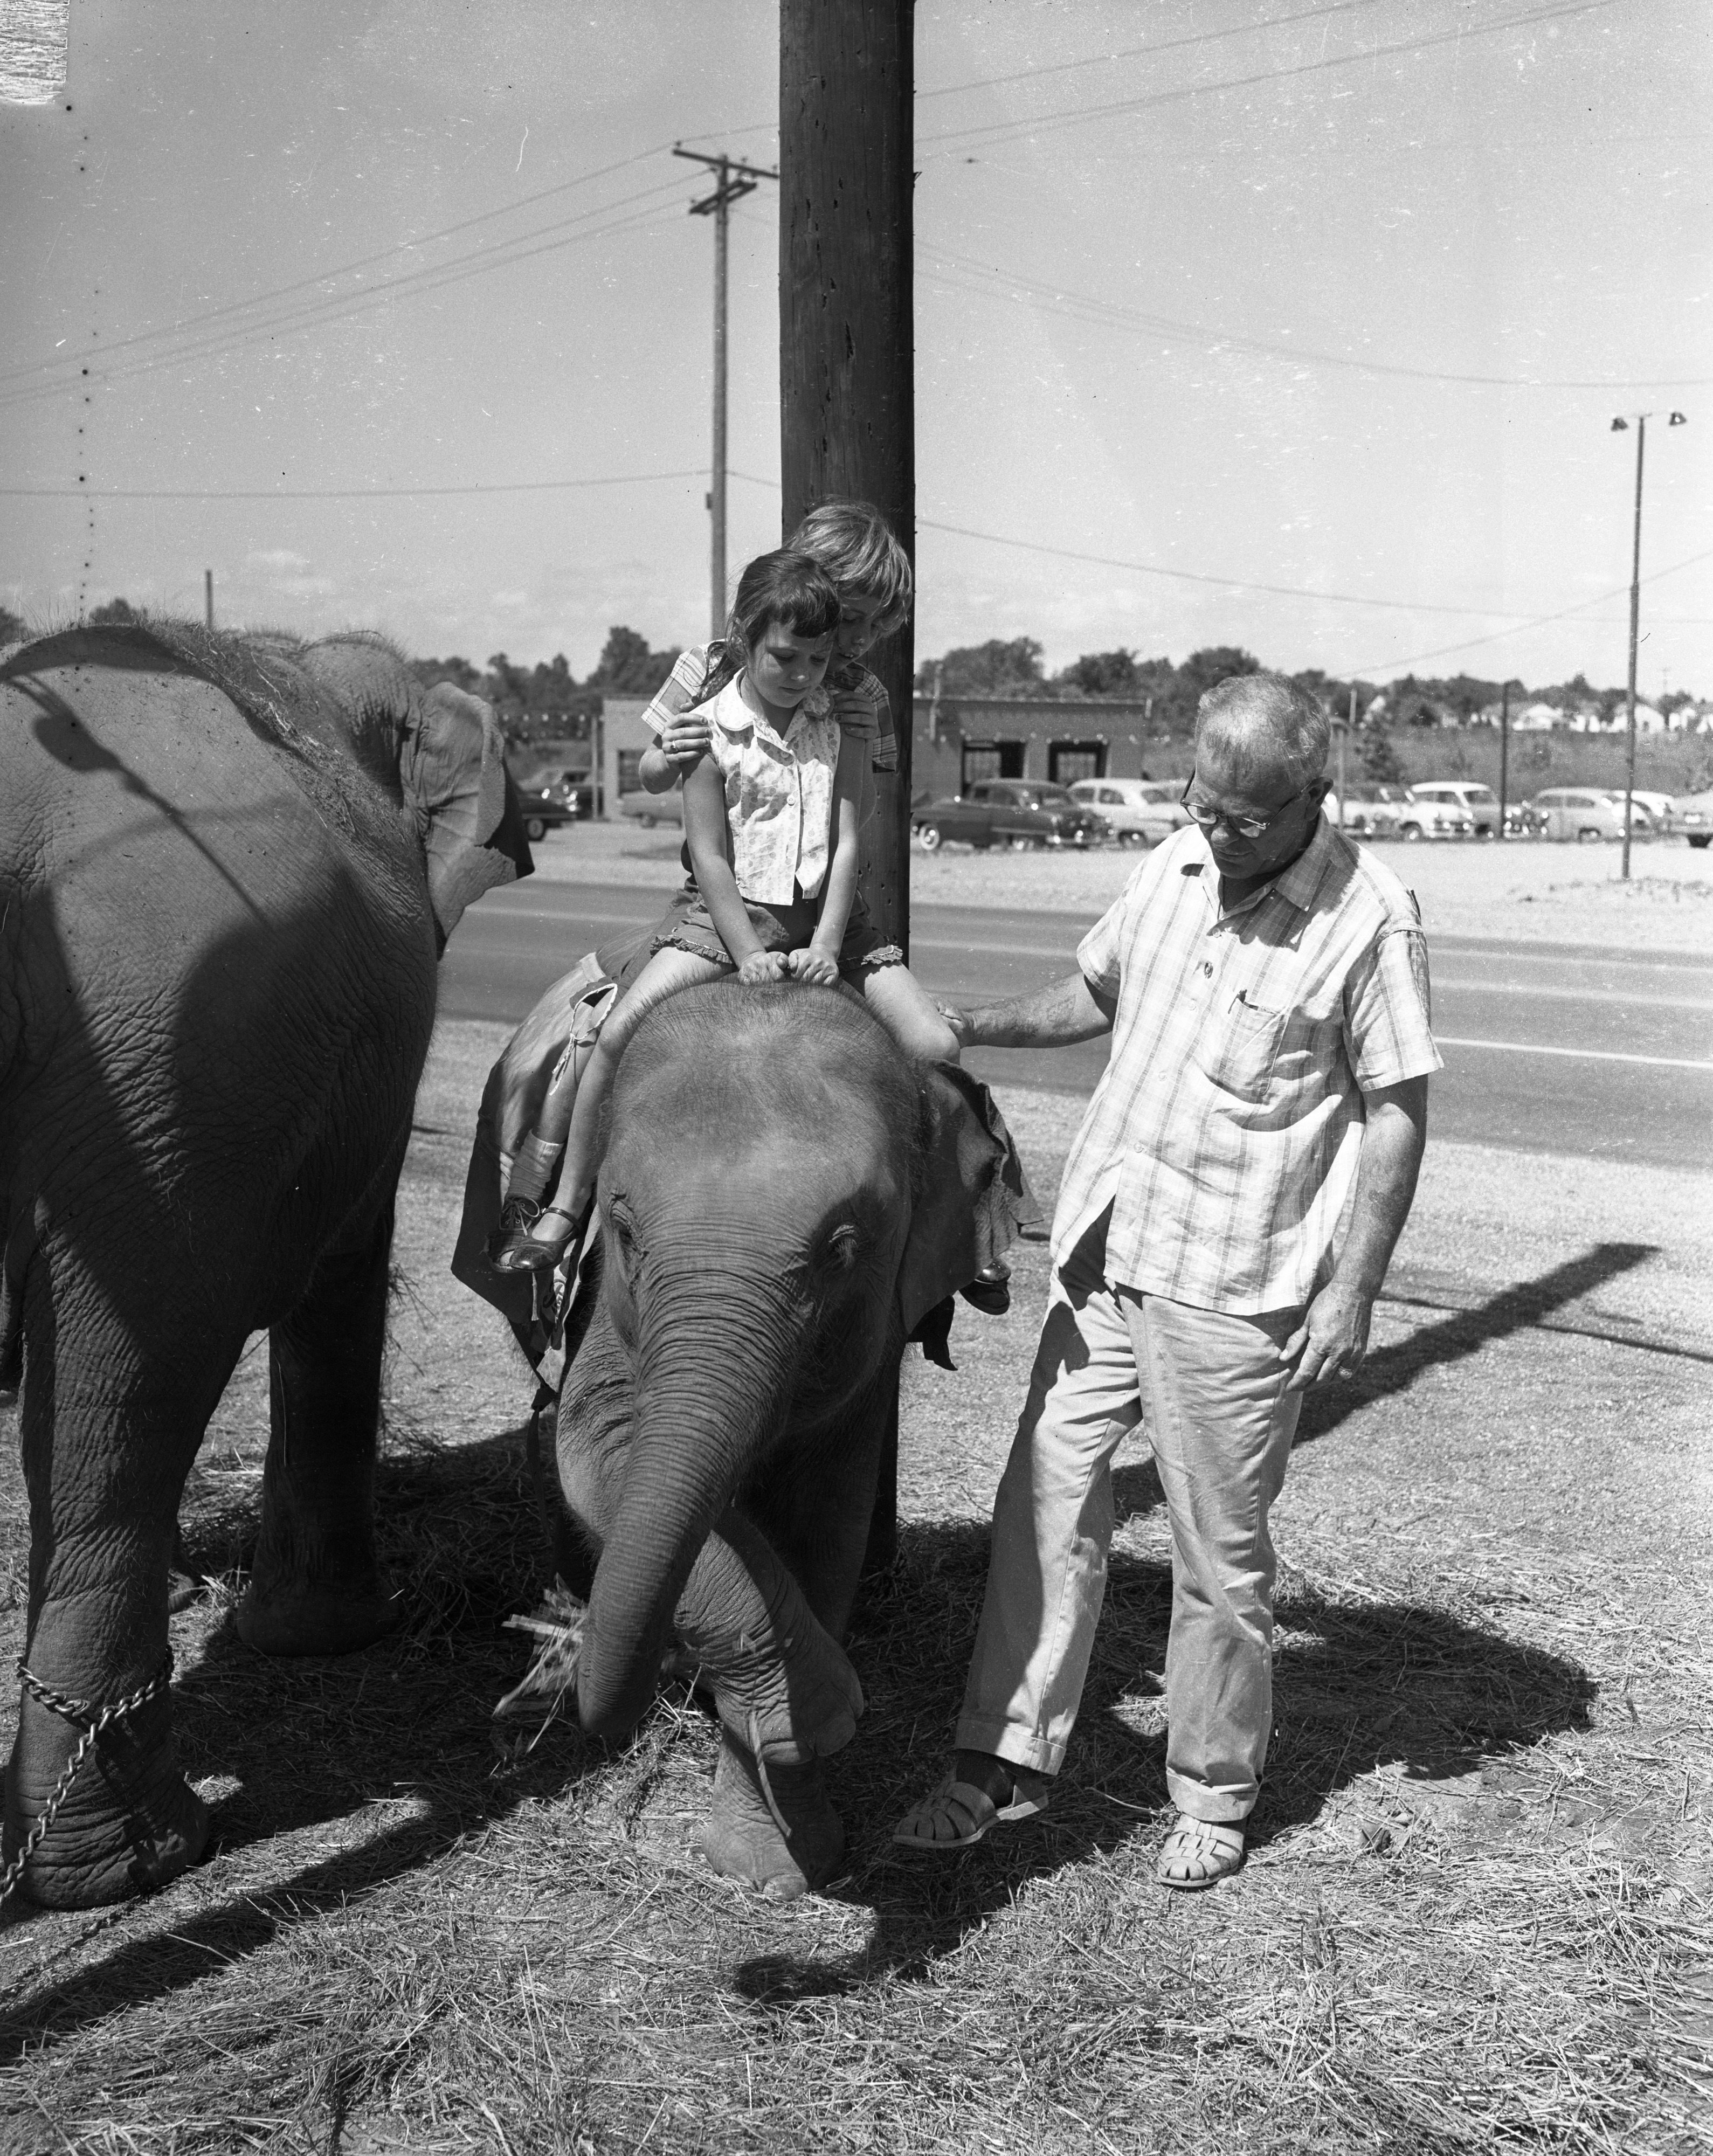 Becky Brooks and Angela Cavosie on elephant at Vincent Chevrolet, August 1957 image